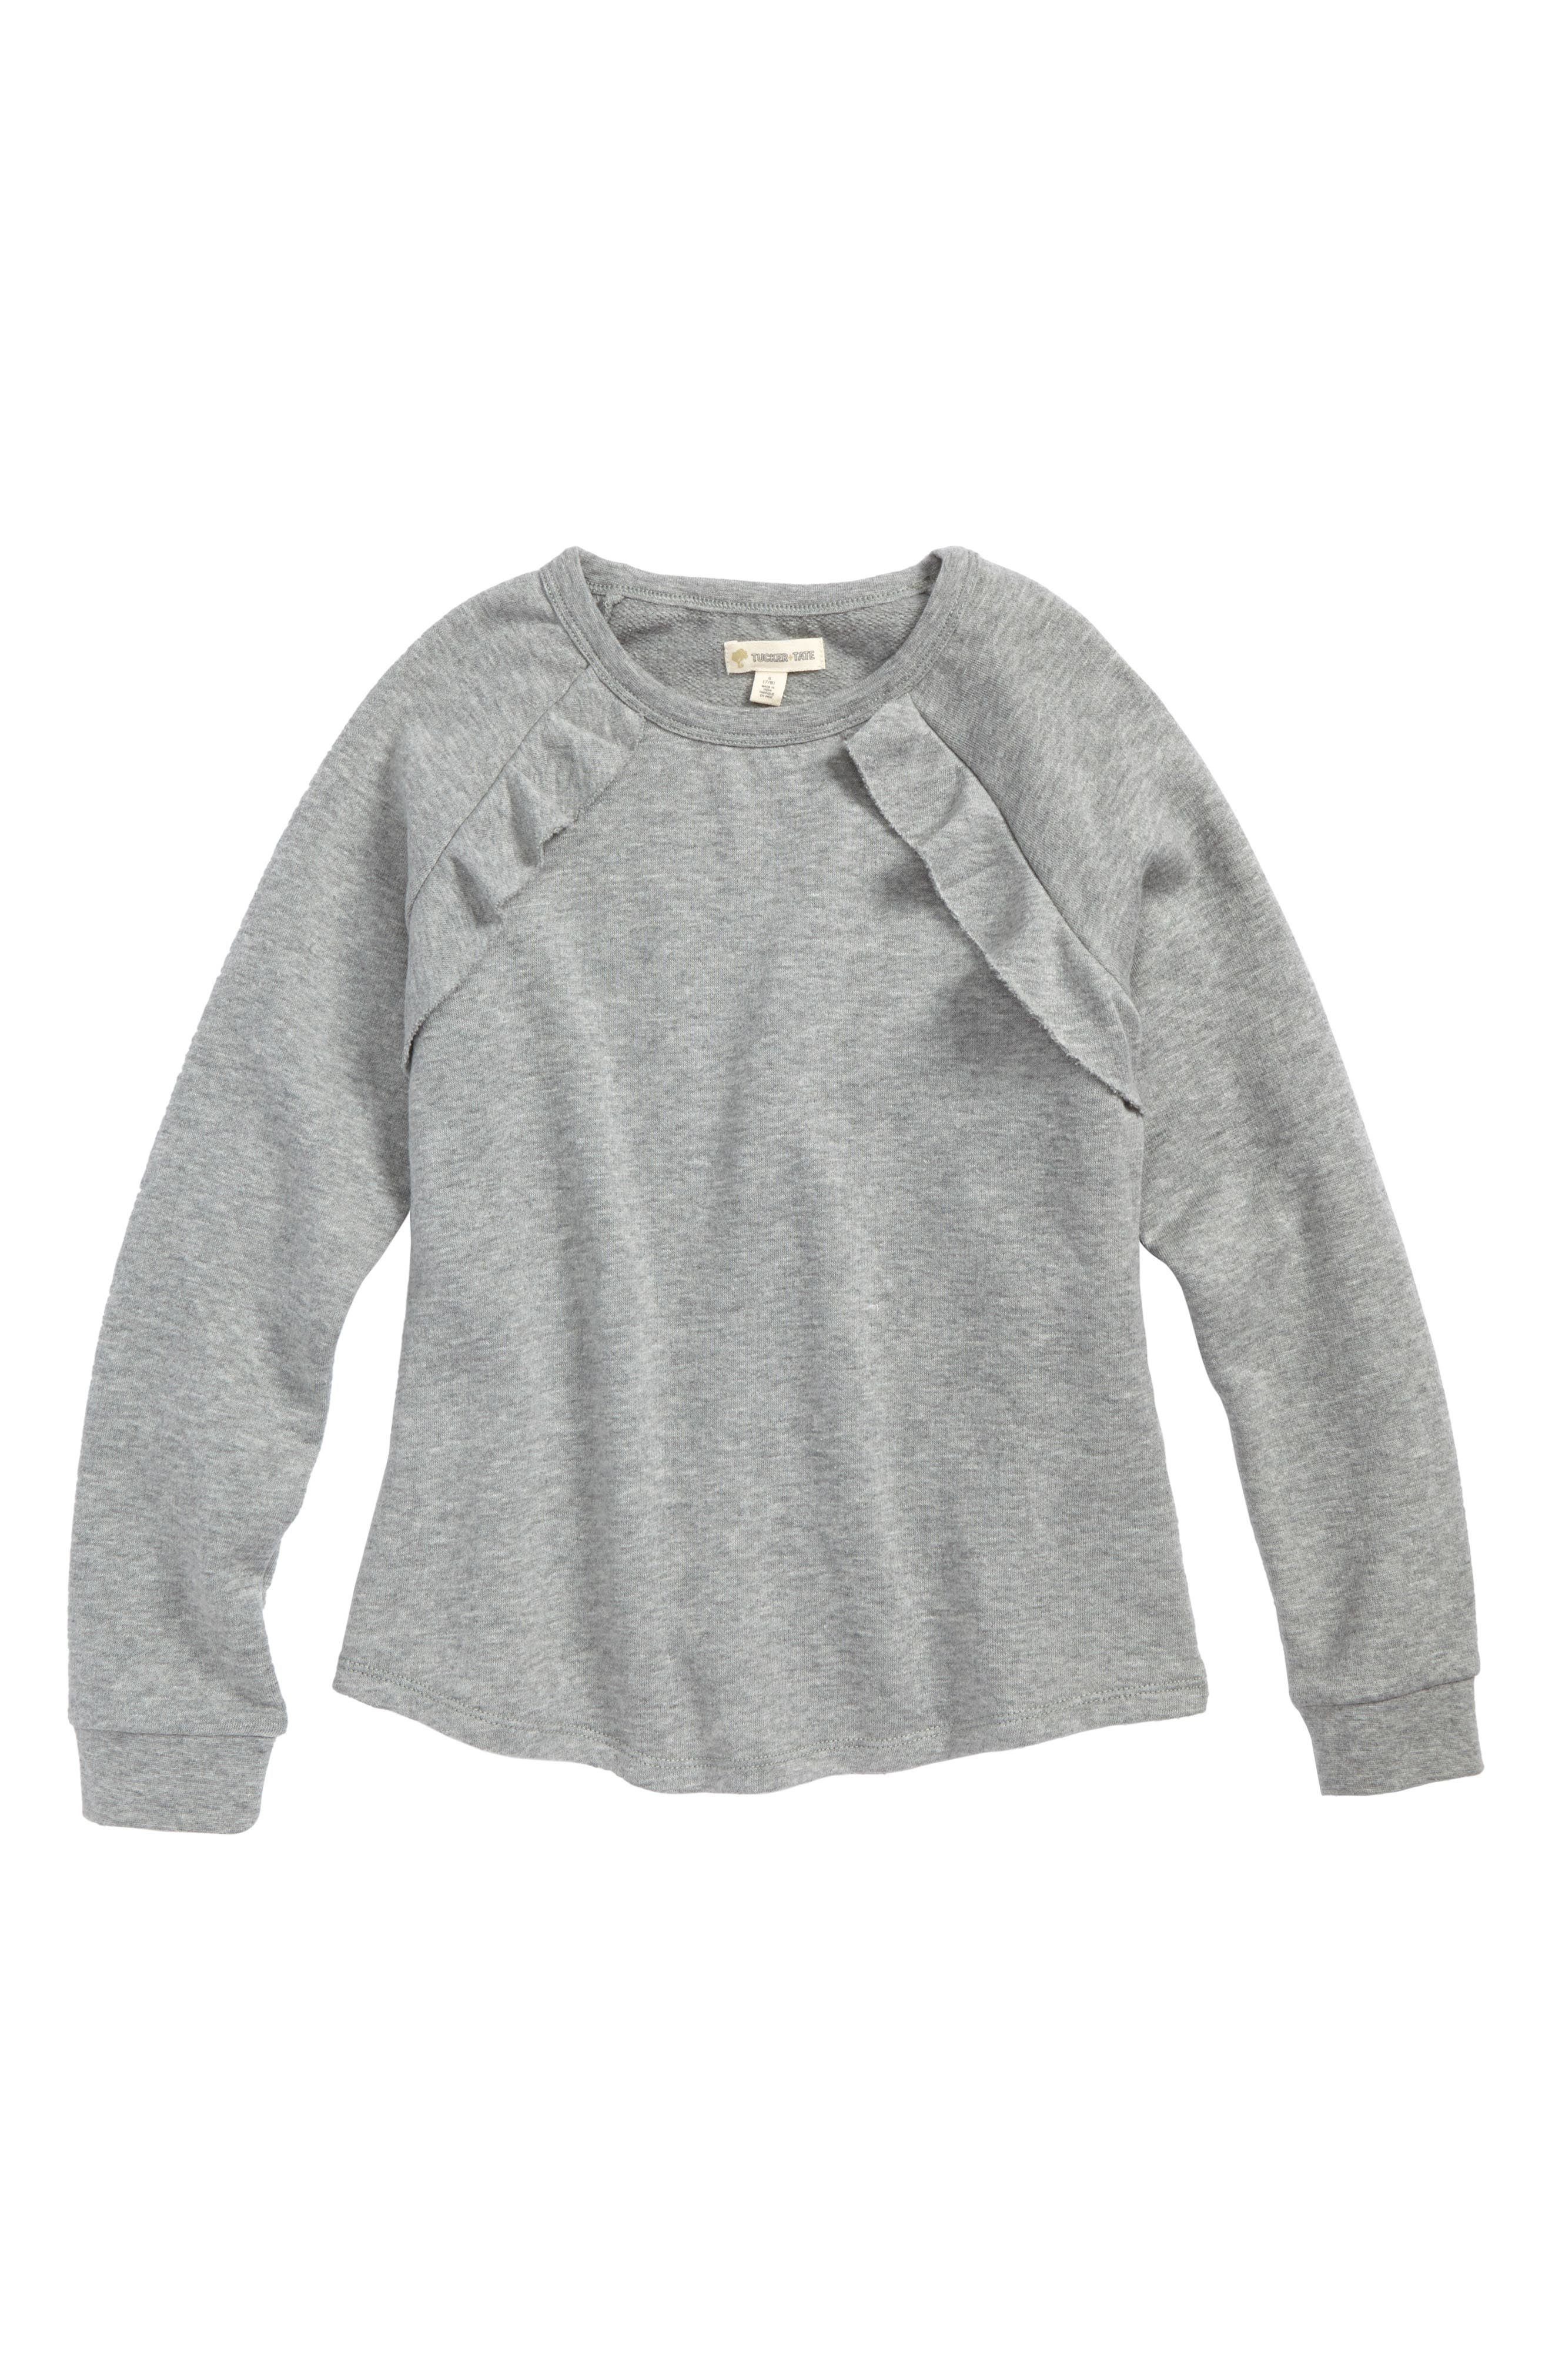 Ruffle Fleece Sweatshirt,                         Main,                         color, Grey Medium Heather